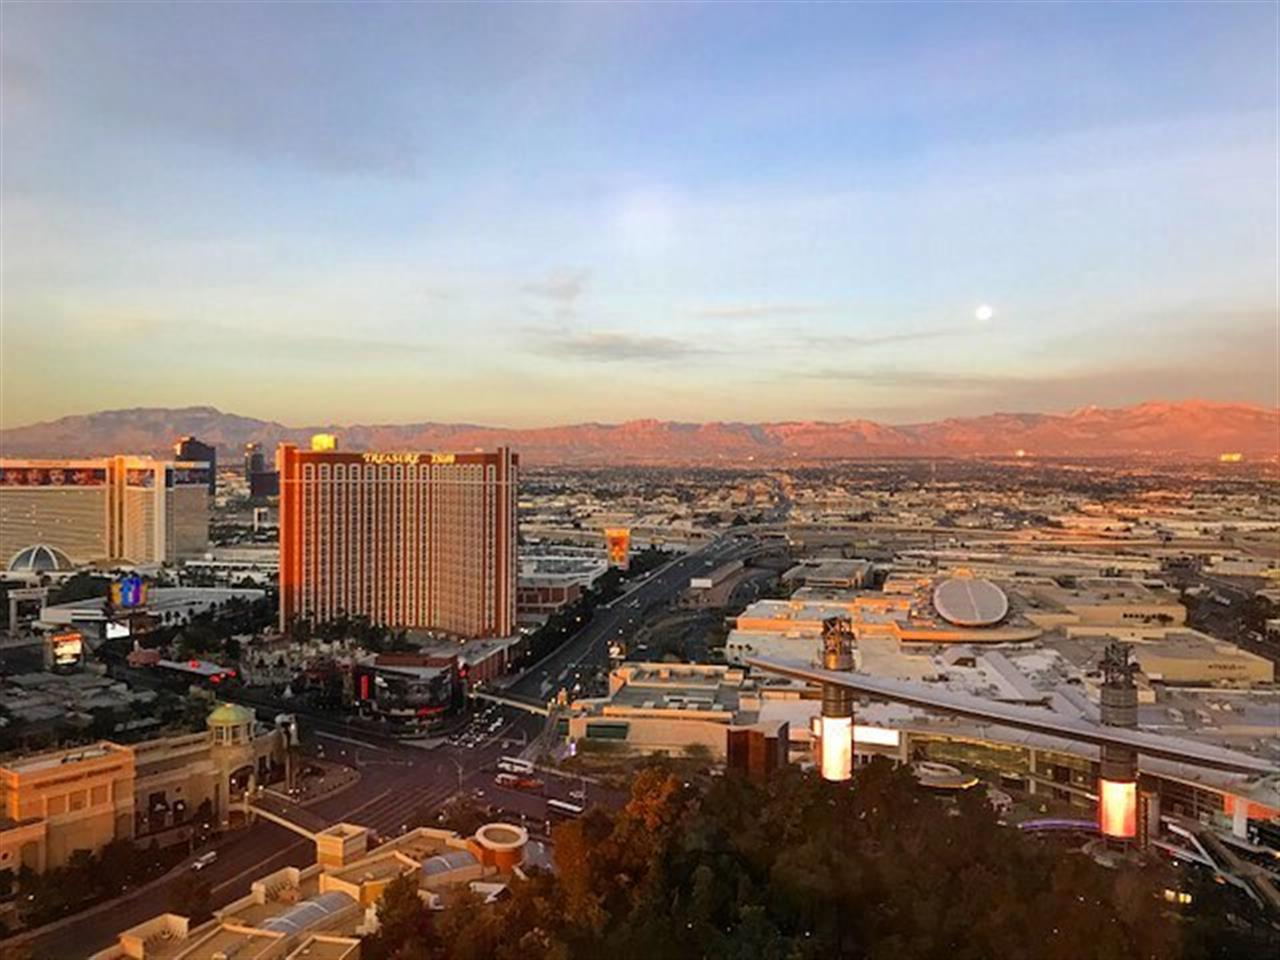 One last beautiful morning in Vegas. What an exciting, informative, and invigorating week it has been! 2018 is going to be a great year!! #goals #goalsetting #ewm #leadingre #leadingrealestatecompaniesoftheworld #leadingrelocal #miami #vegas #lasvegas #wynnlasvegas #realestate #re #southflorida #ewmrealtyinternational #luxurylifestyle #luxury #southfloridaliving